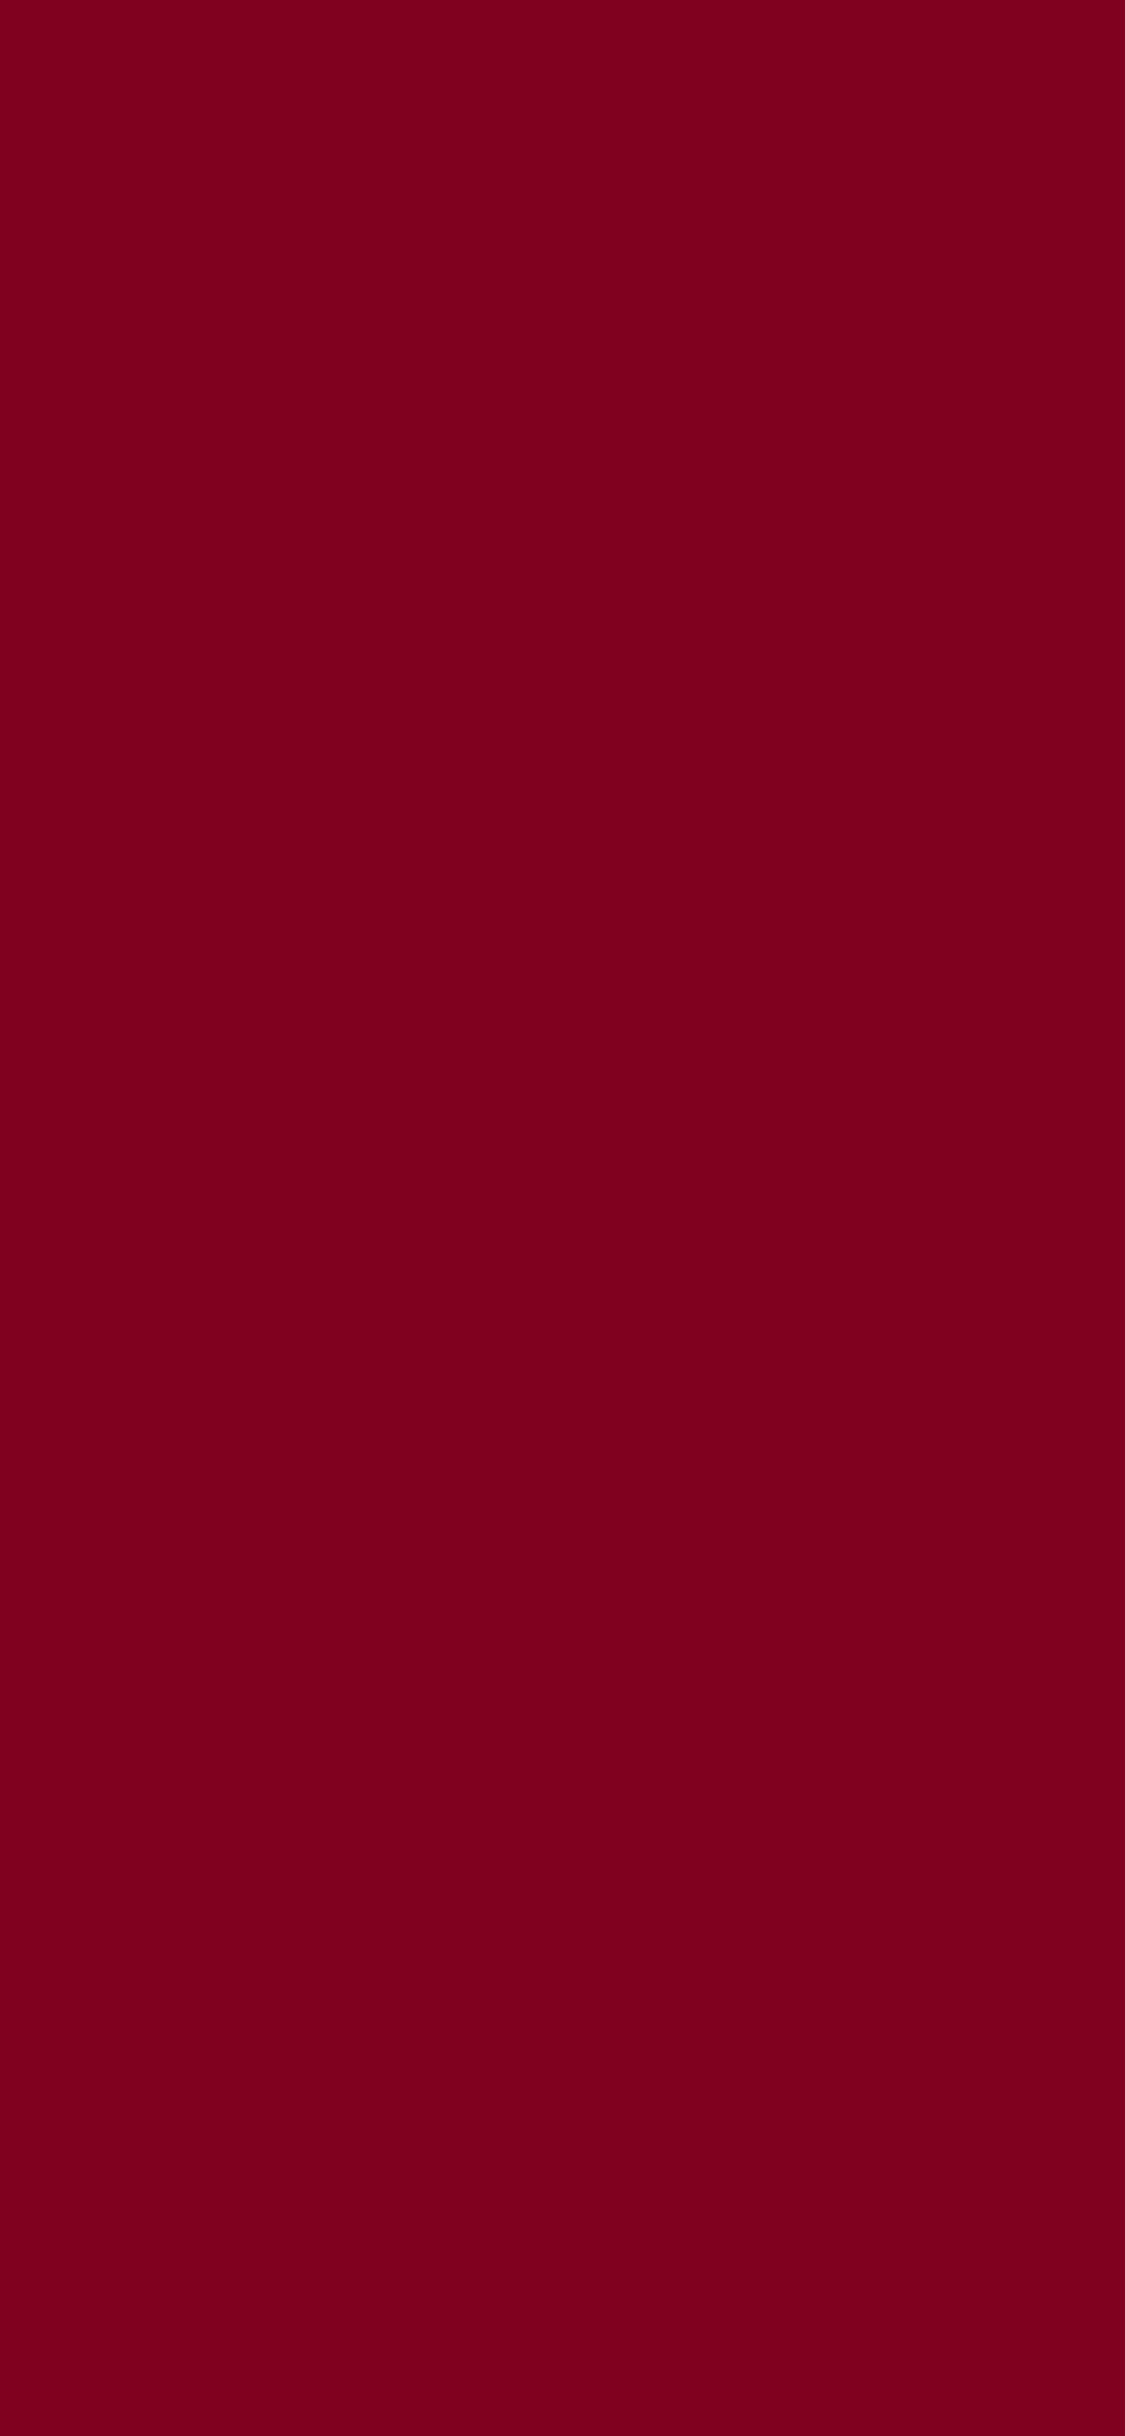 1125x2436 Burgundy Solid Color Background